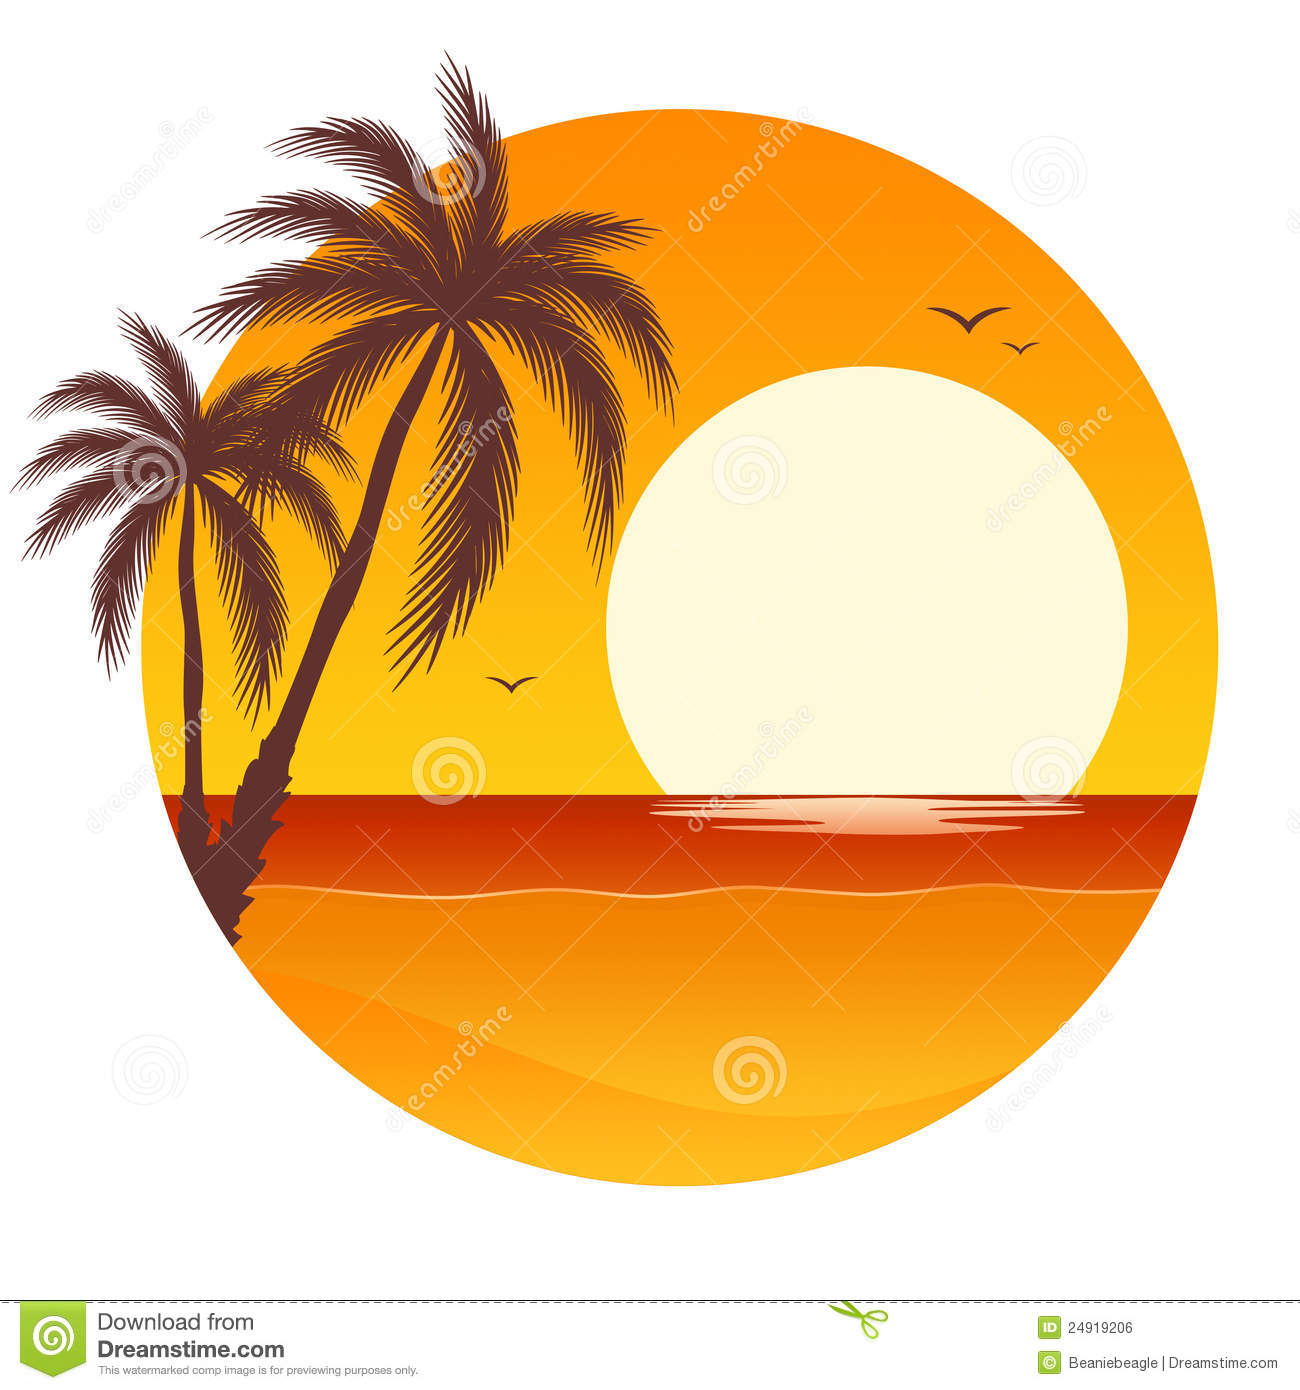 Yellow clipart palm tree Ocean%20sunset%20clipart Ocean Clipart Panda Images